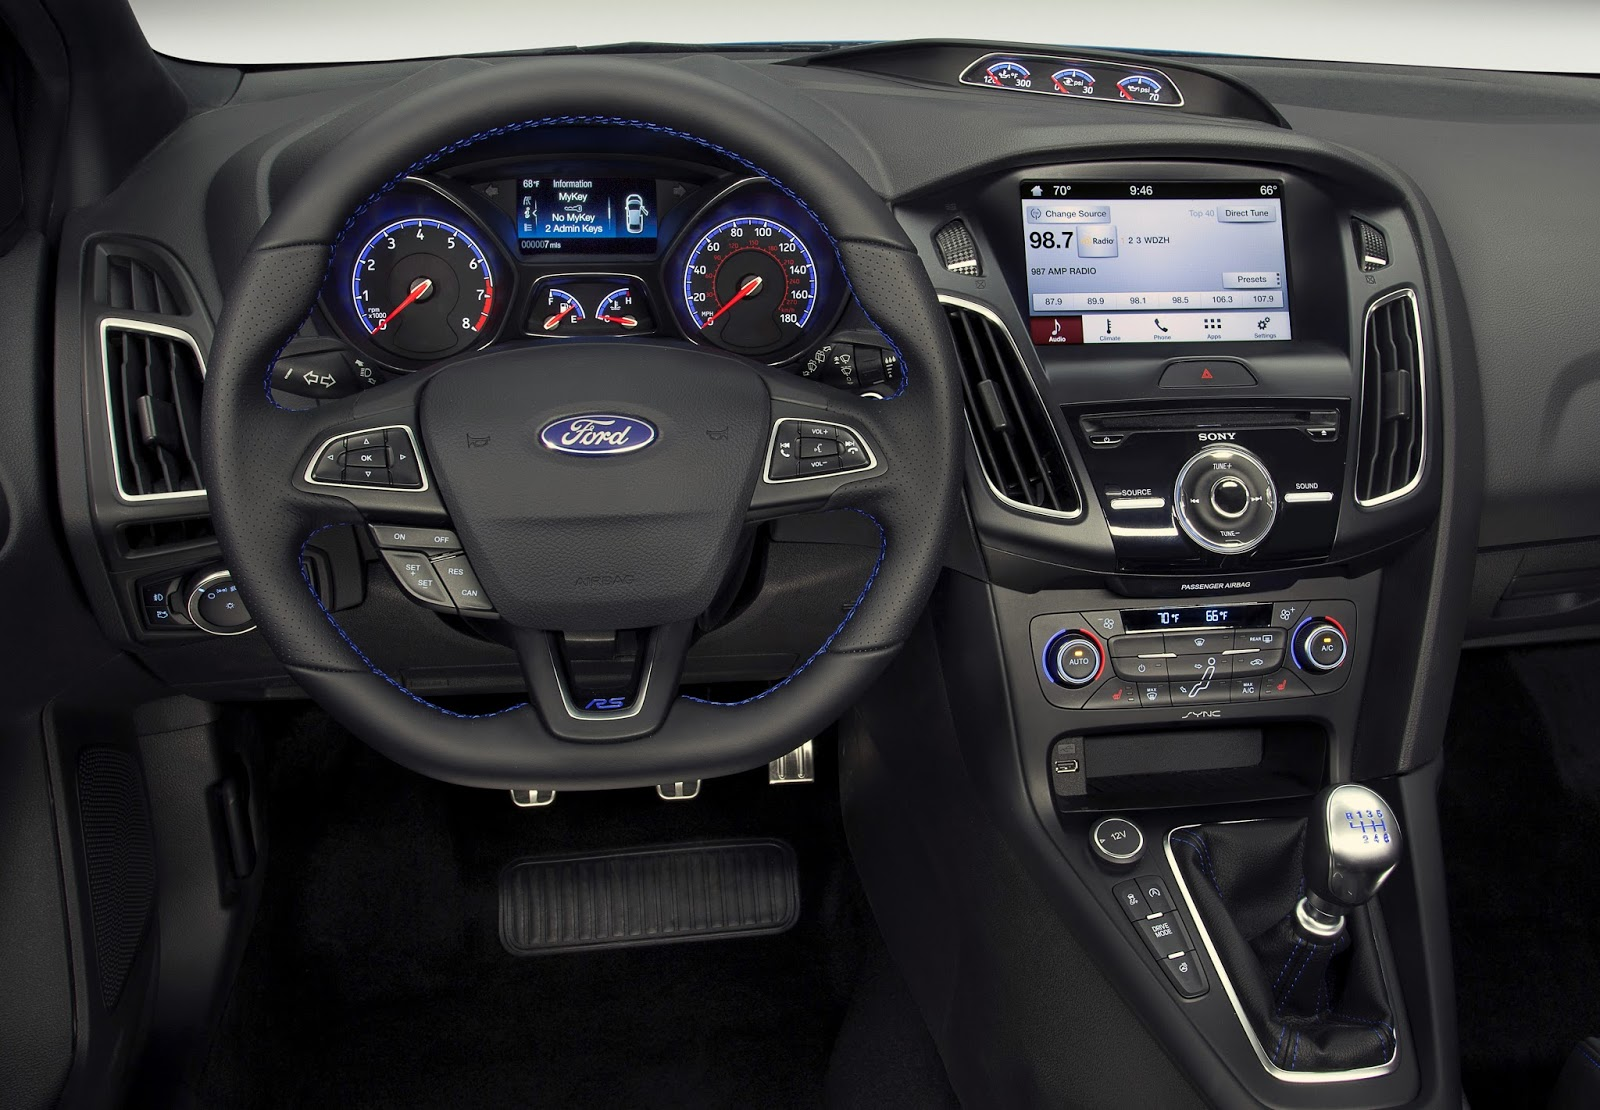 Uautoknownet Highperformance Focus RS Now On Tap At Your Local - Nearest ford dealership